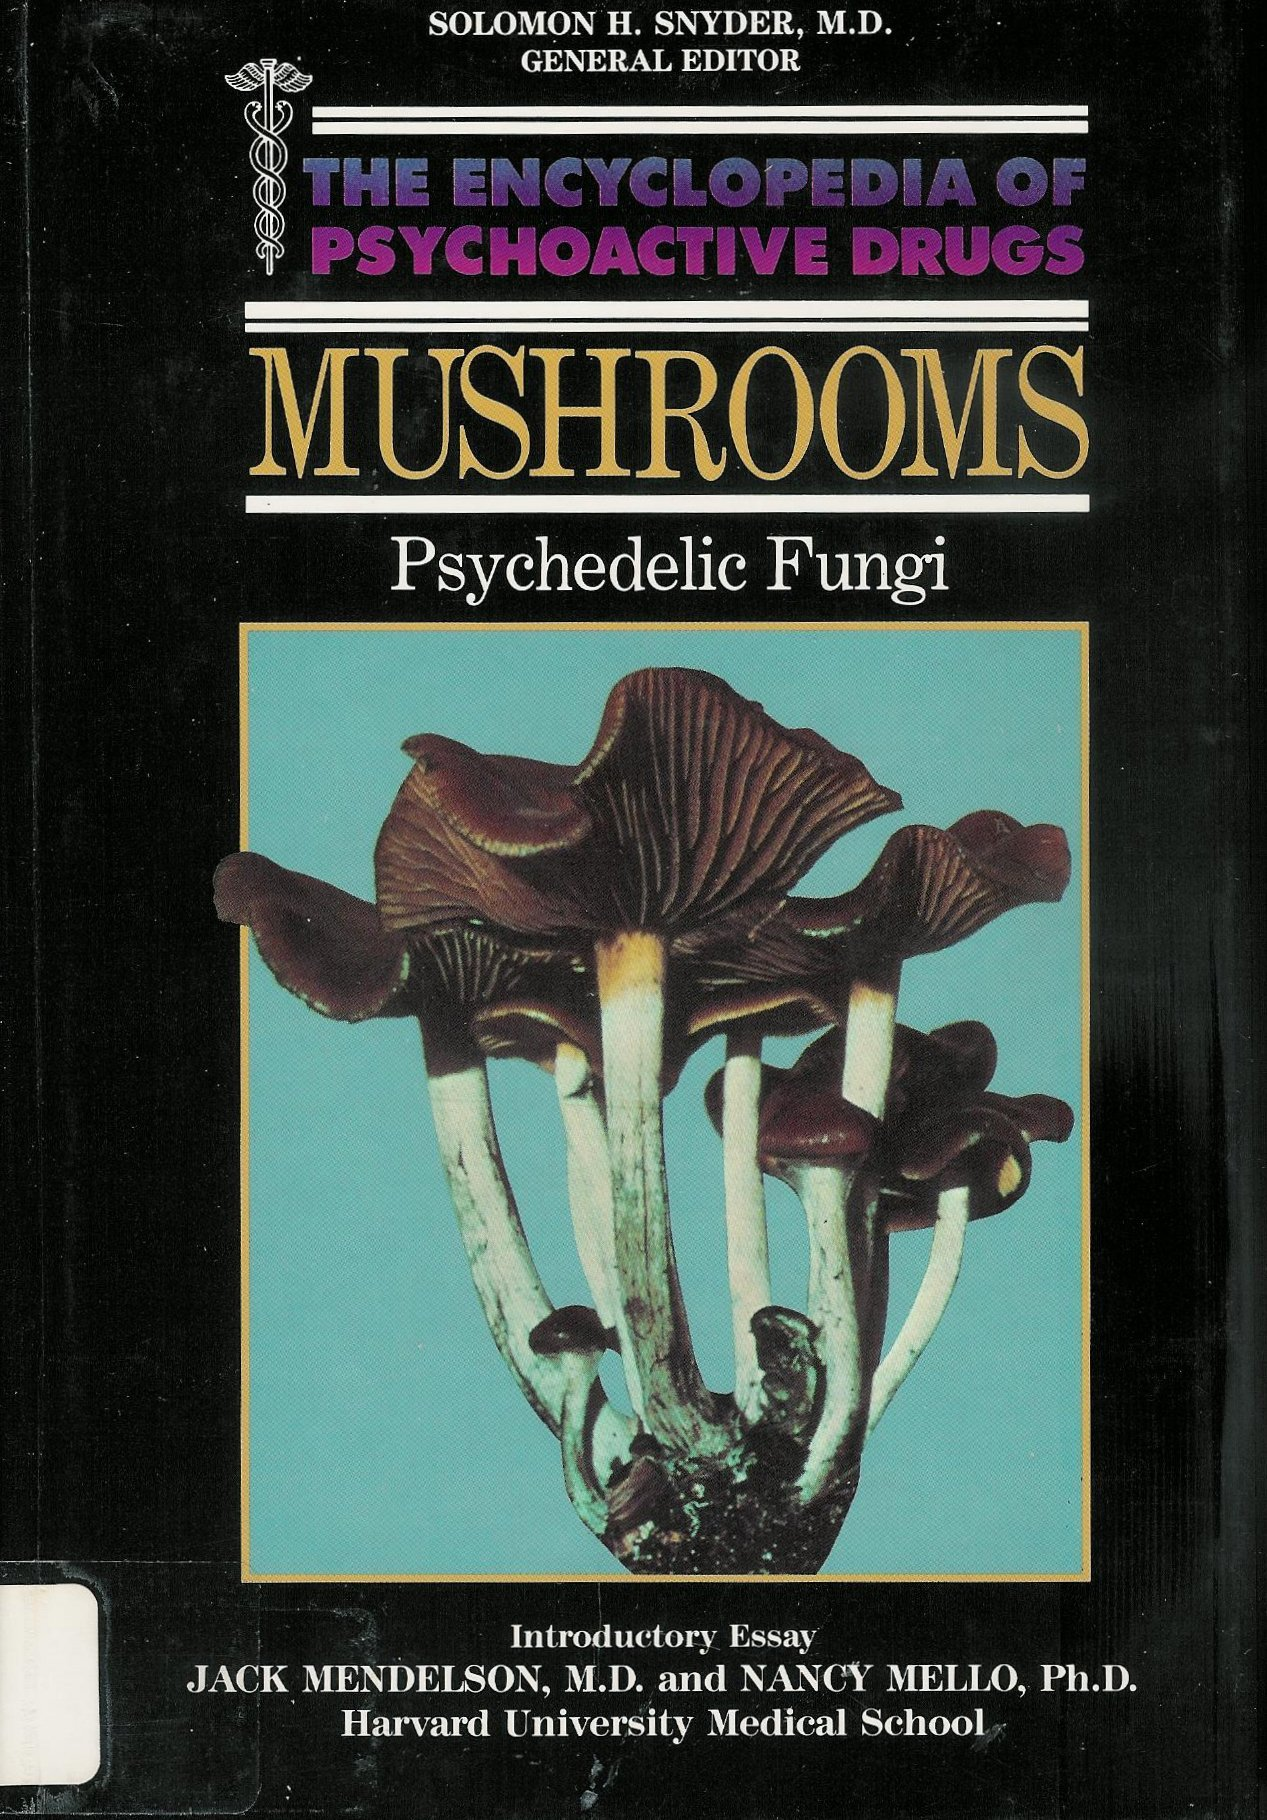 Mushrooms psychedelic fungi encyclopedia of psychoactive drugs mushrooms psychedelic fungi encyclopedia of psychoactive drugs series 1 peter e furst 9780877547679 amazon books fandeluxe Choice Image